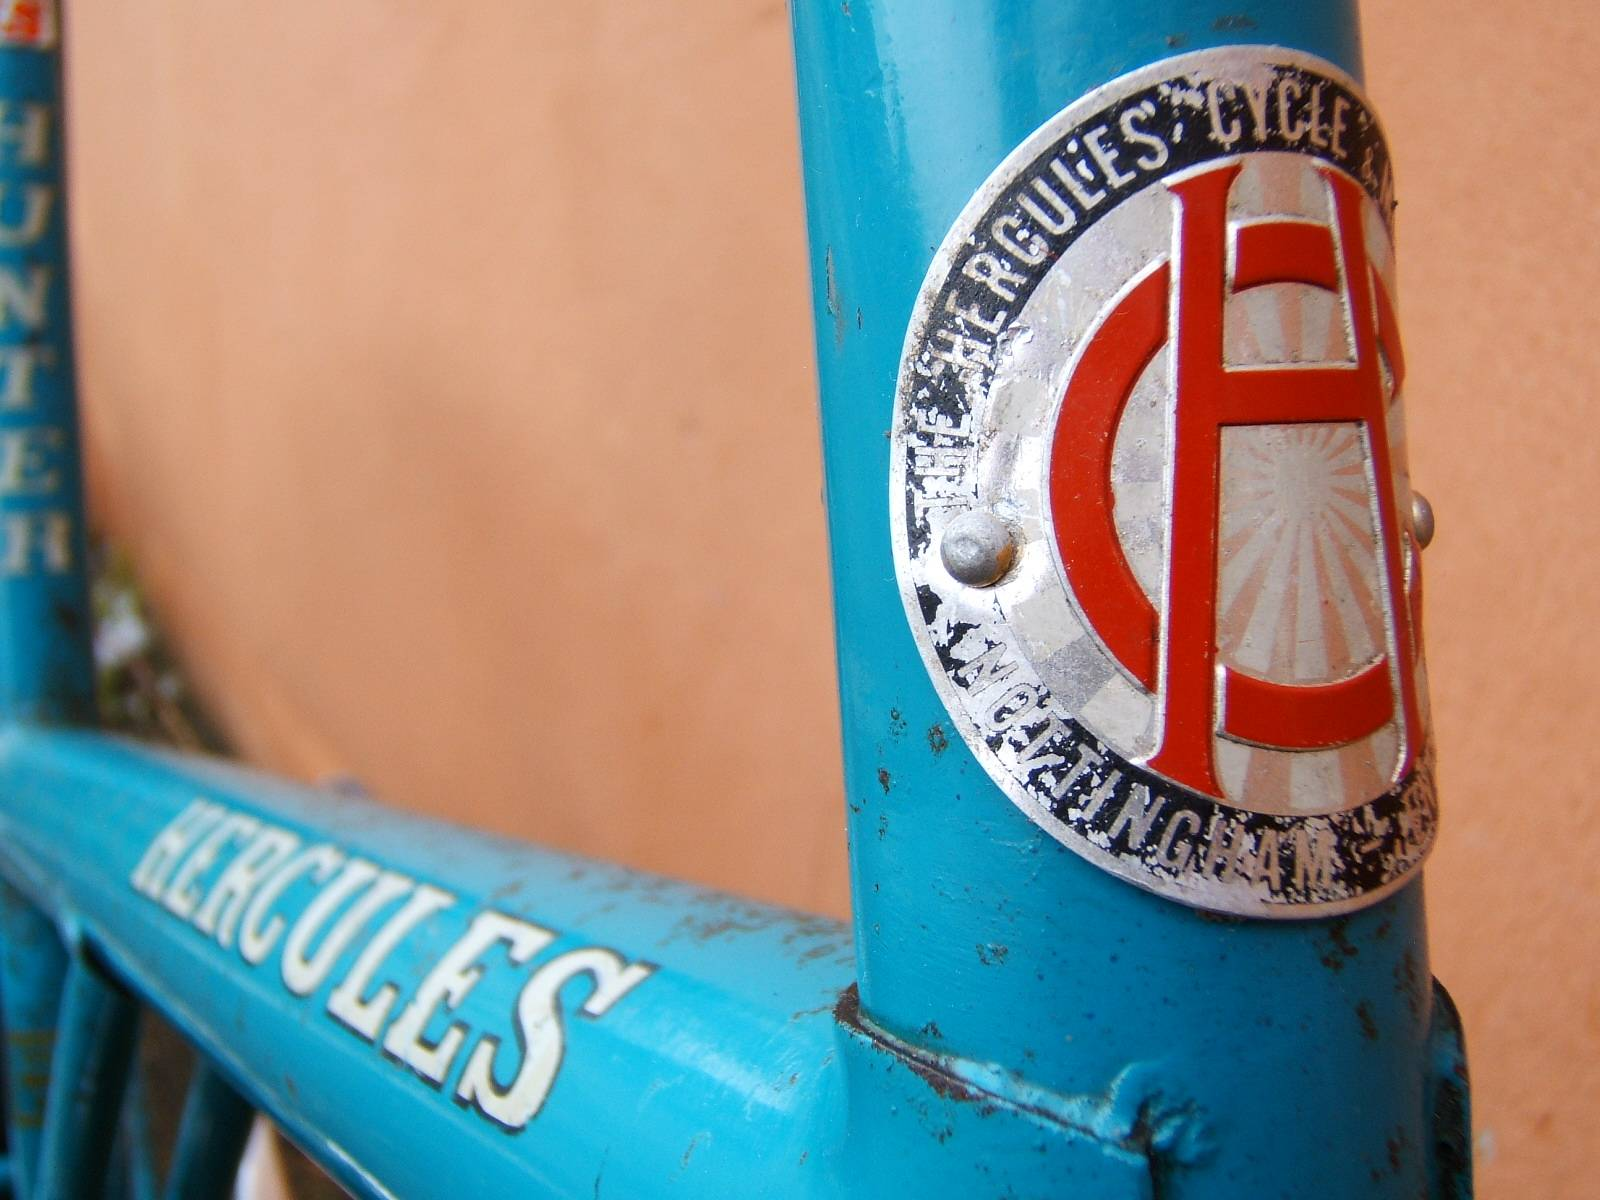 Hercules Cycles